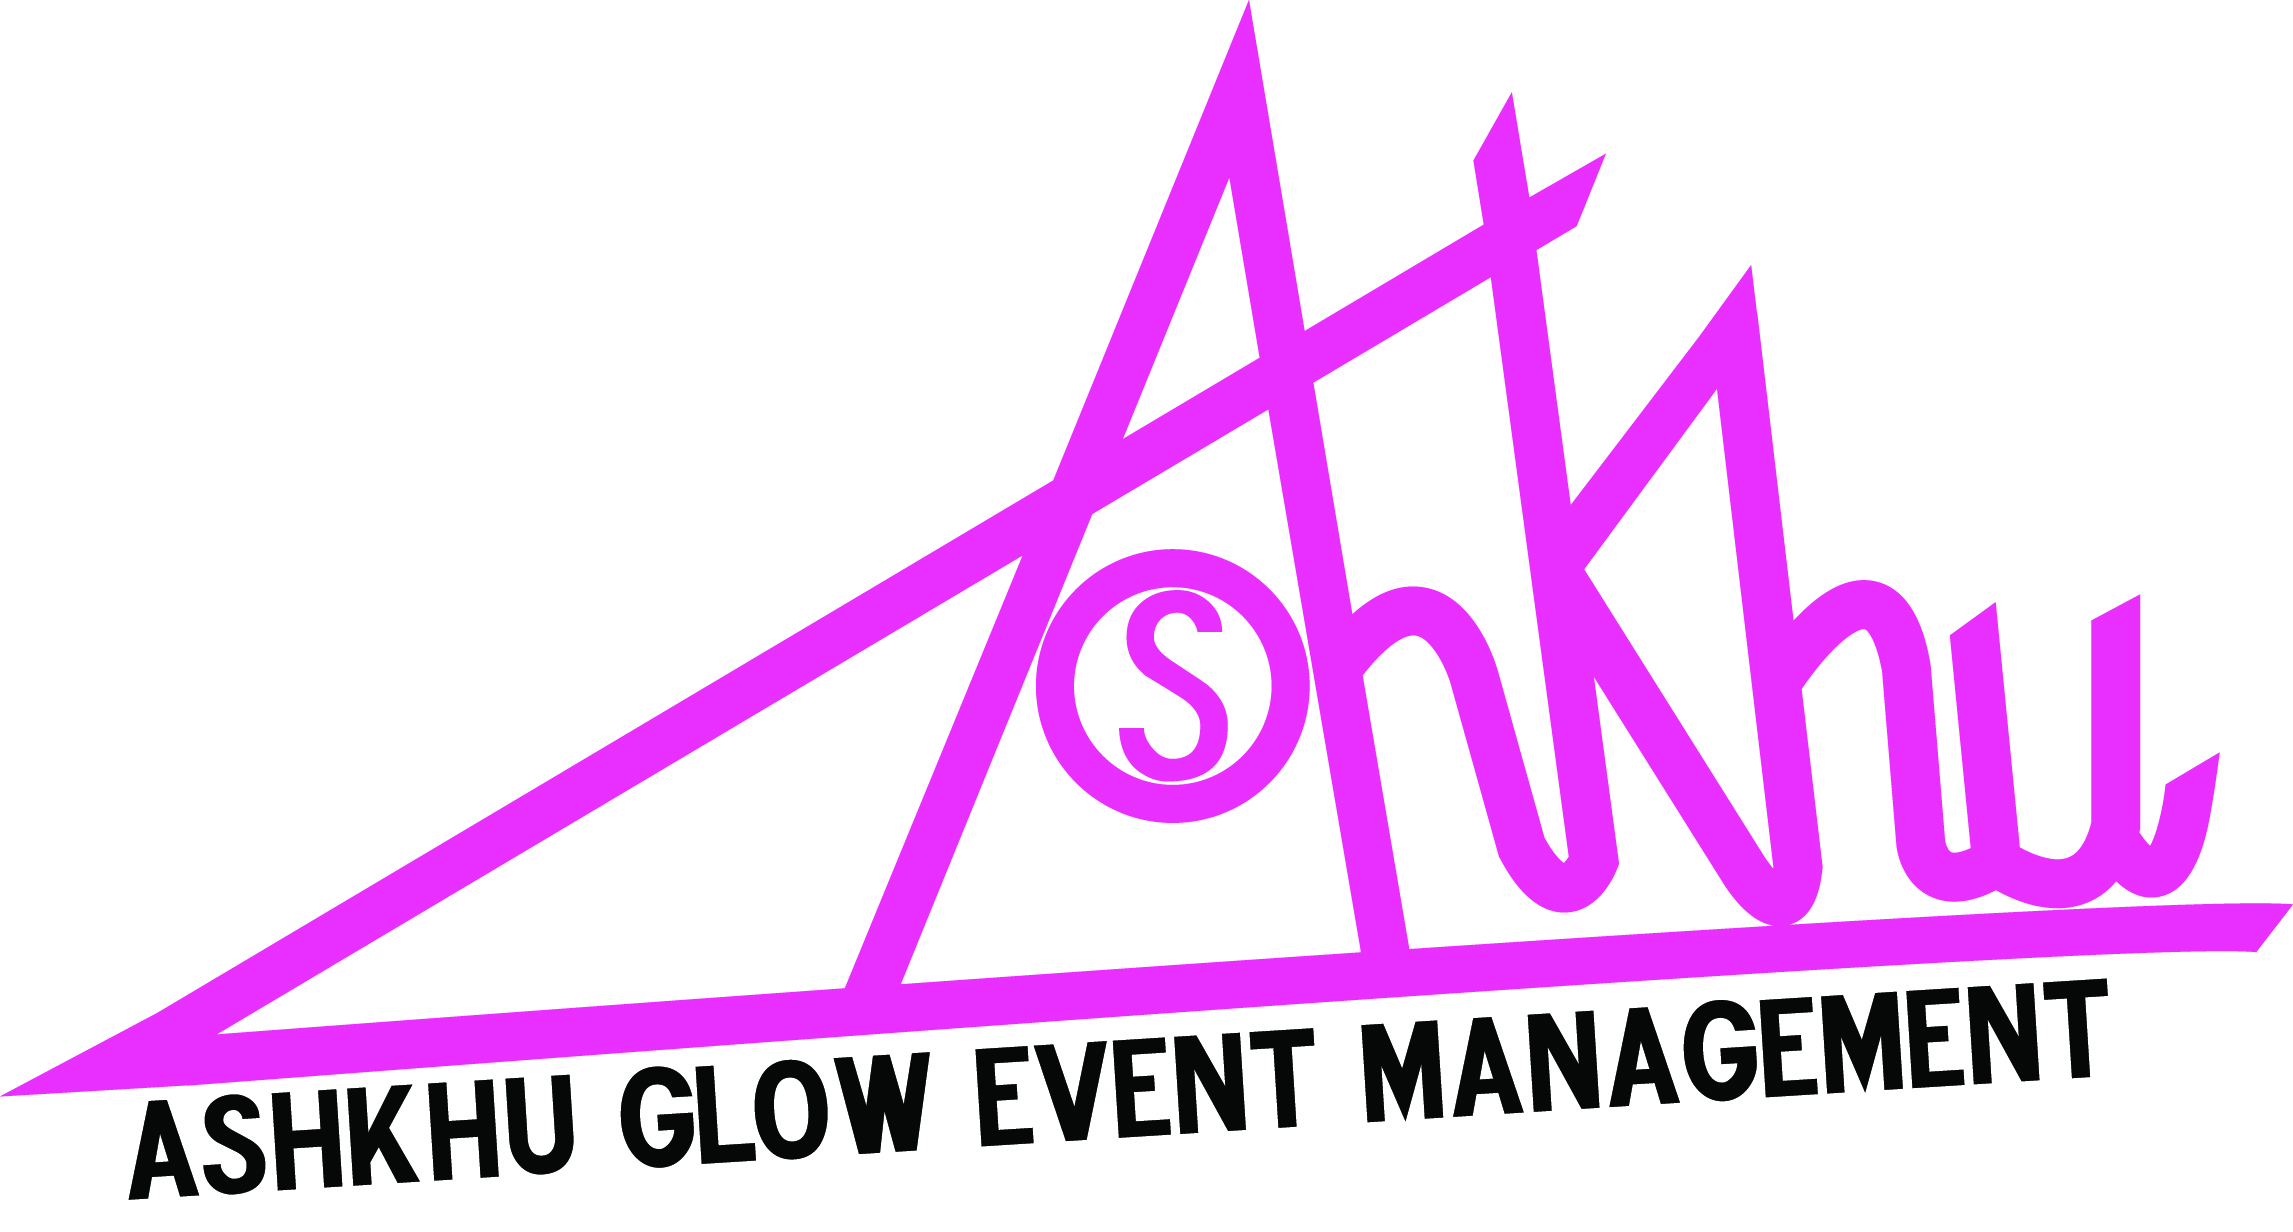 Ashkhu Glow Event Management